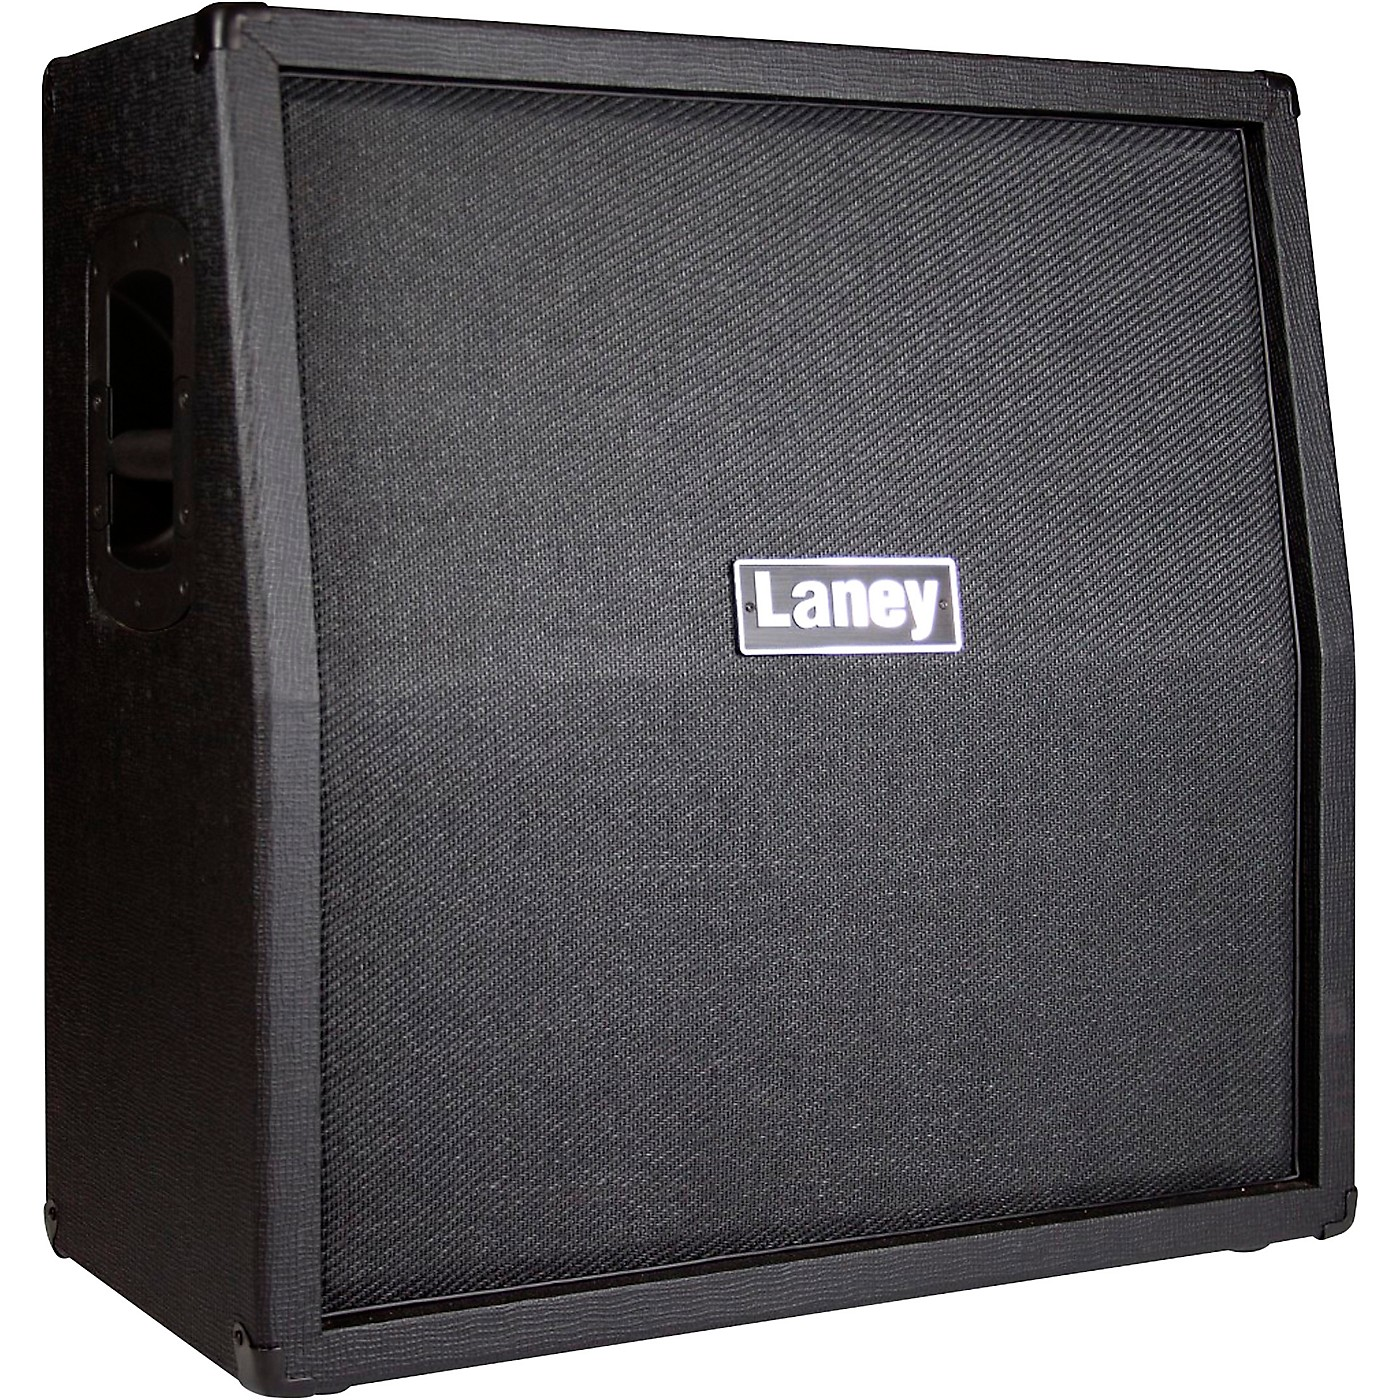 Laney LV412A 280W 4x12 Guitar Speaker Cab thumbnail